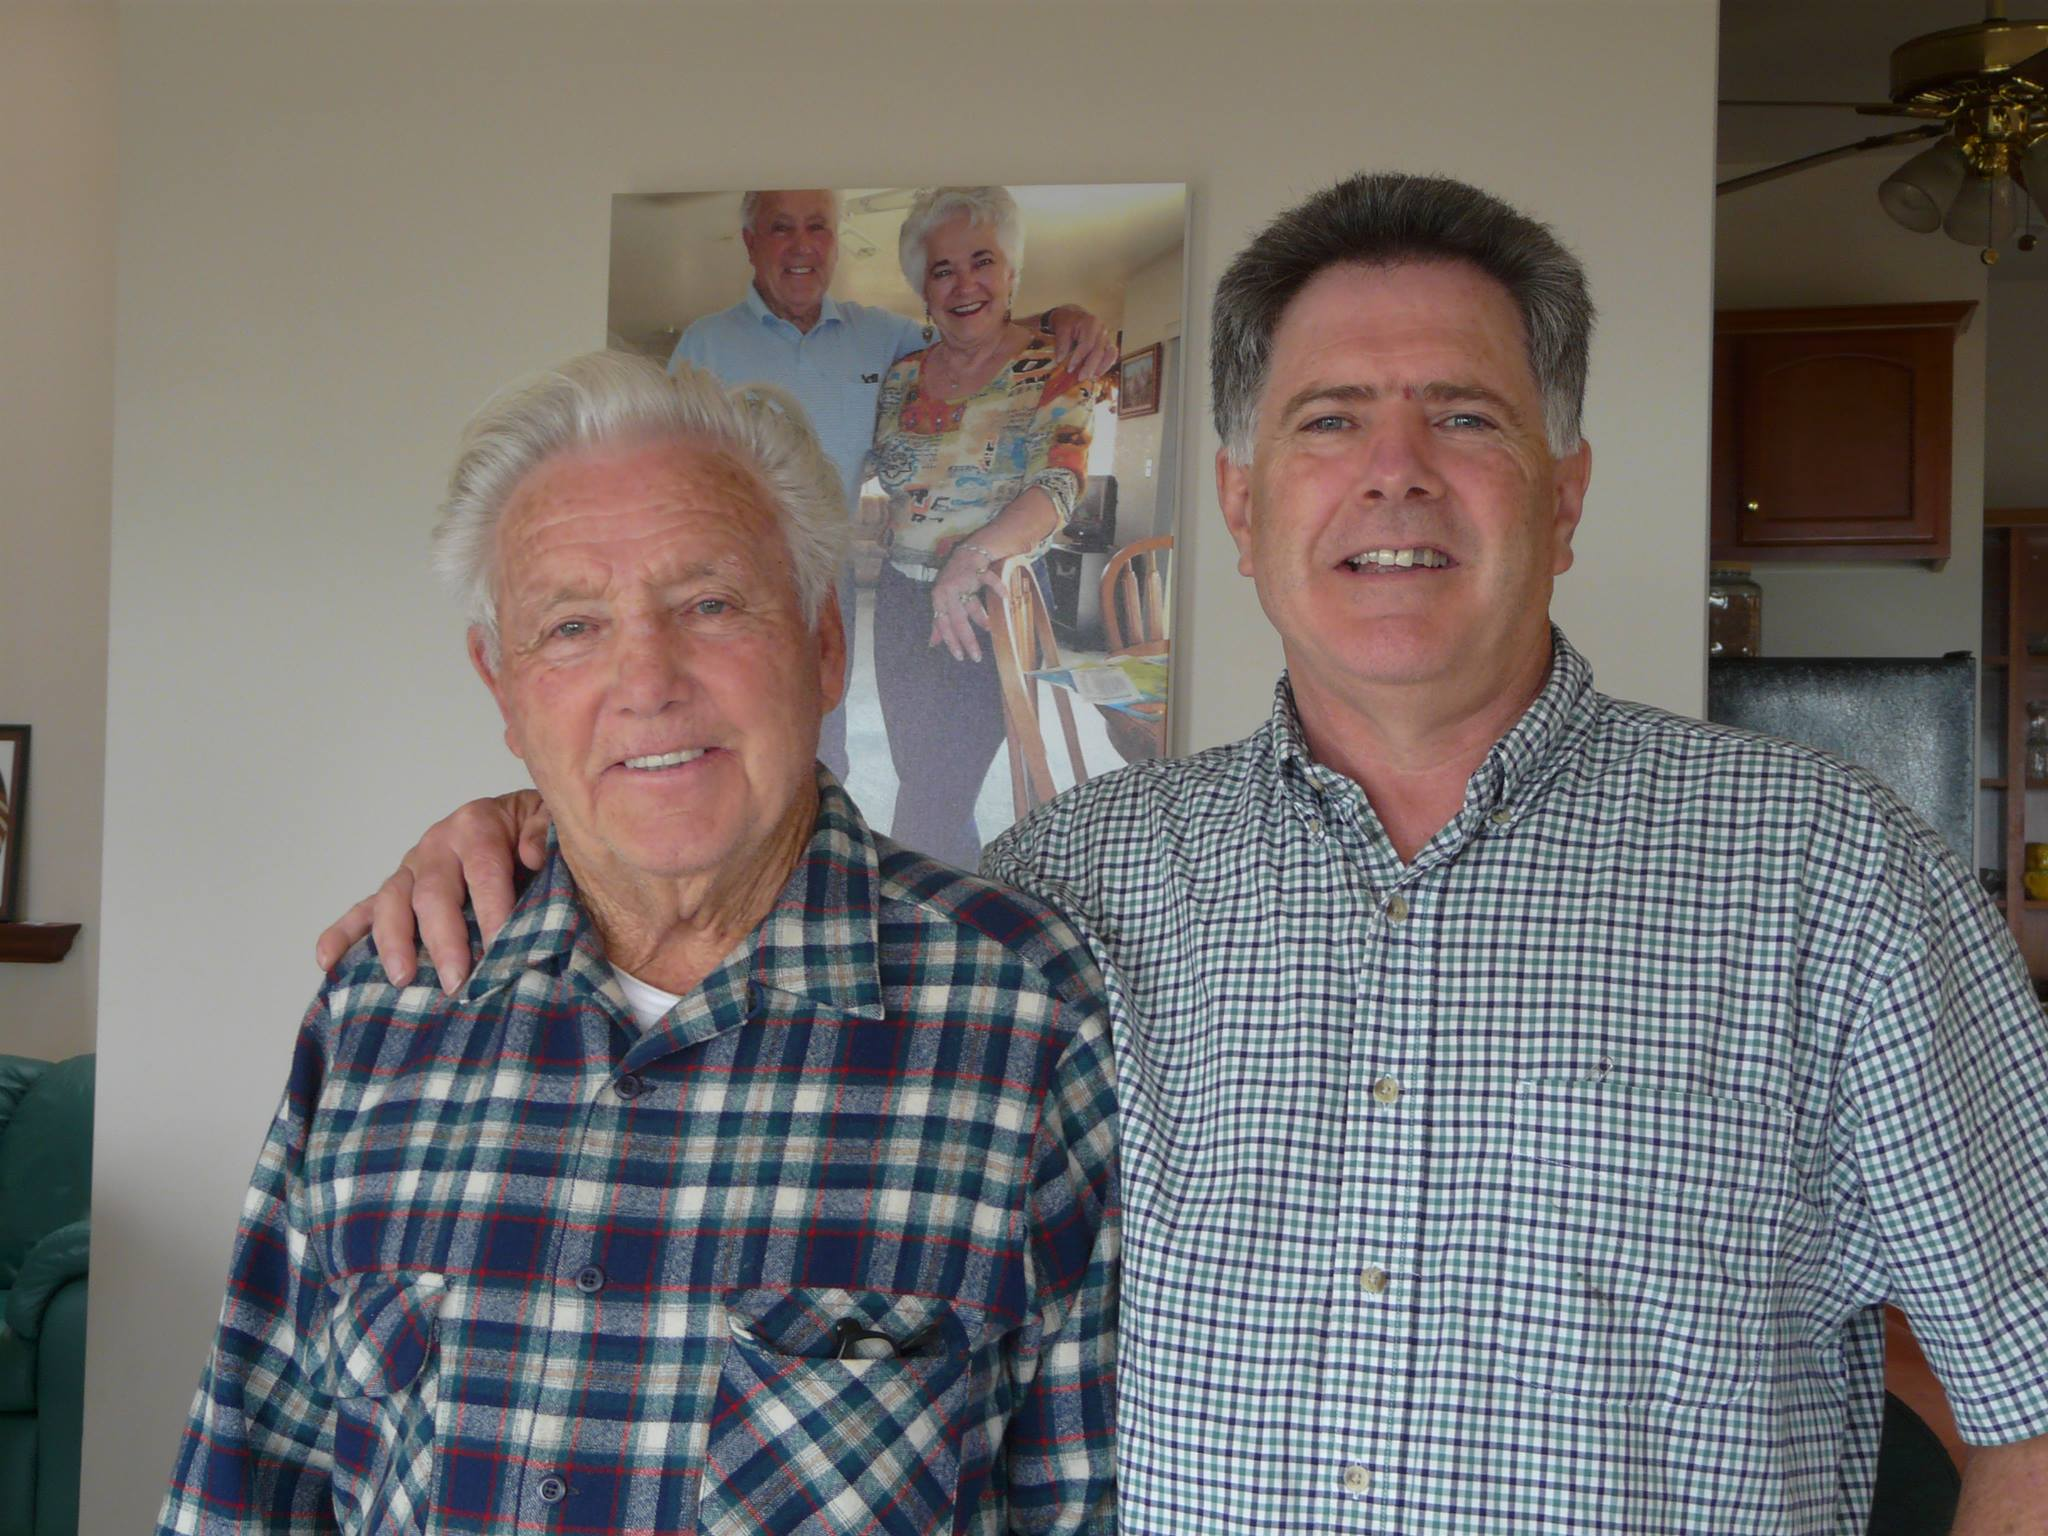 Pat Quinn, founder, and his son, Mike Quinn, the current owner